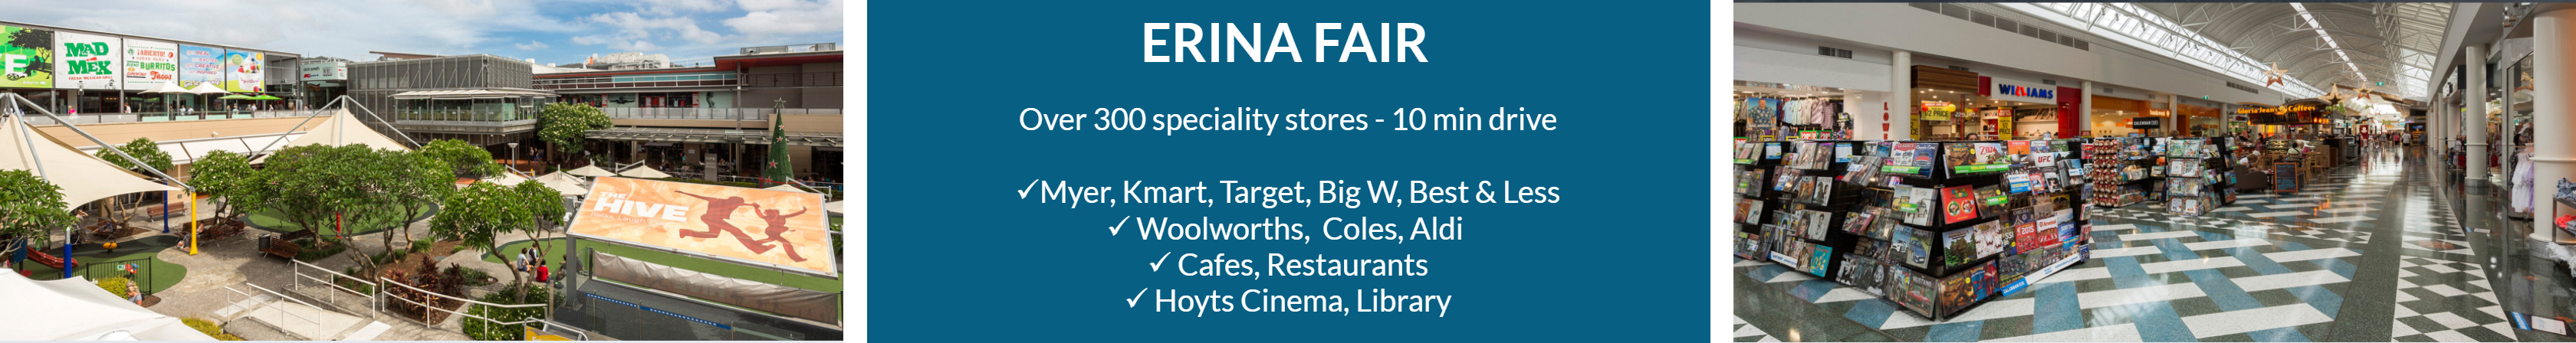 Erina Fair Shopping Centre